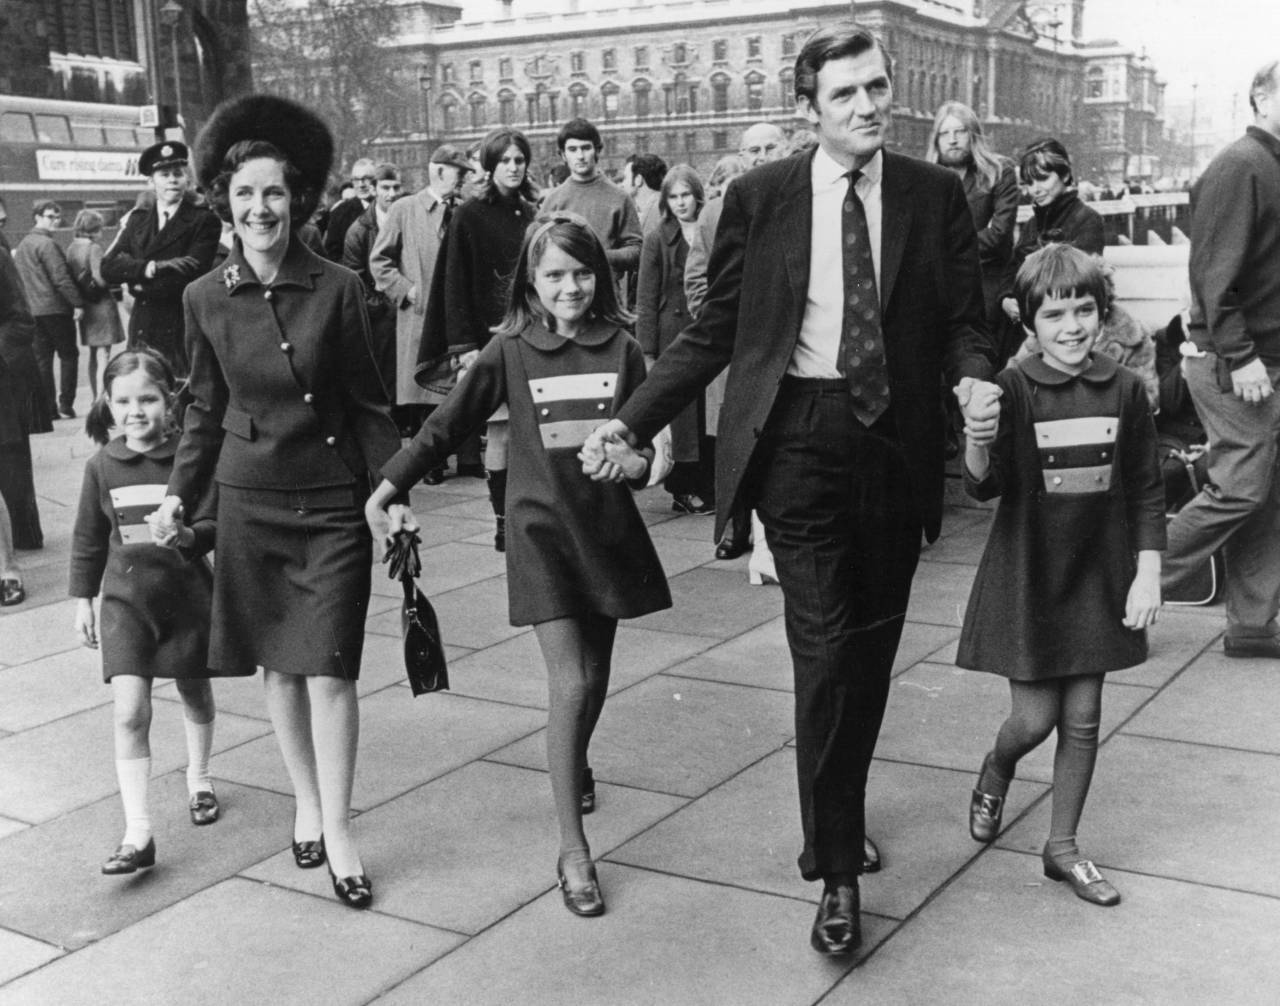 24th November 1970: Cecil Parkinson after his by-Election victory, arriving at the House of Commons with his family, prior to taking his seat in Parliament. (Photo by Ian Showell/Keystone/Getty Images)